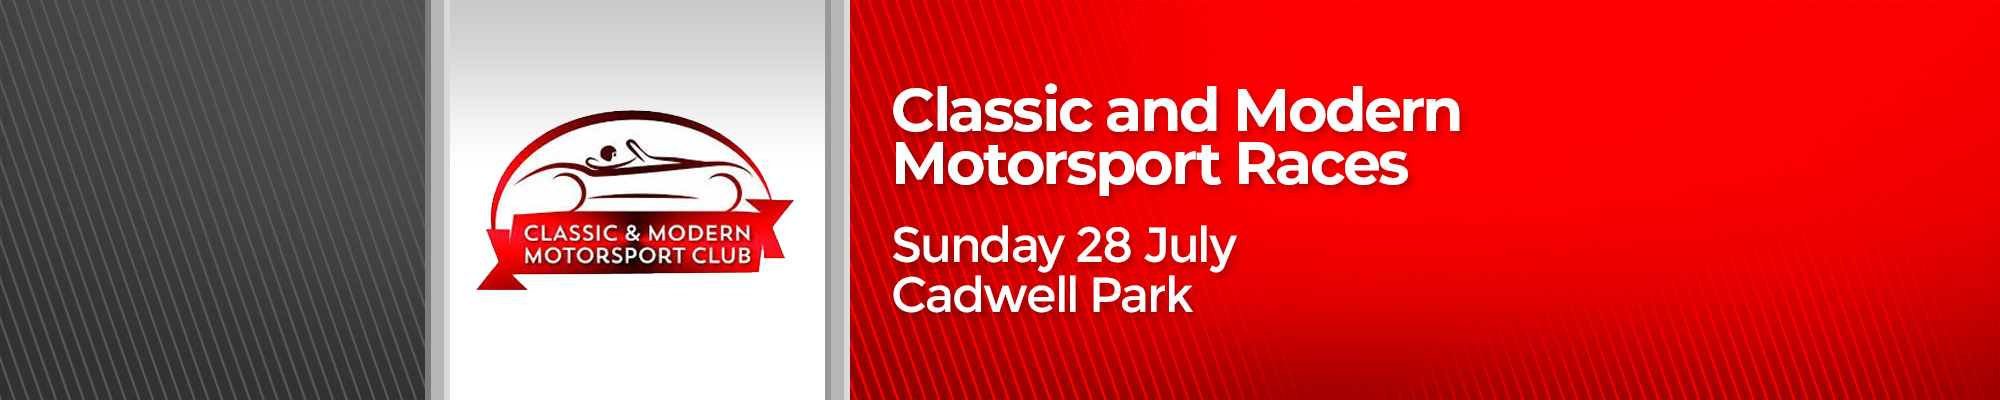 Classic and Modern Motorsport Races